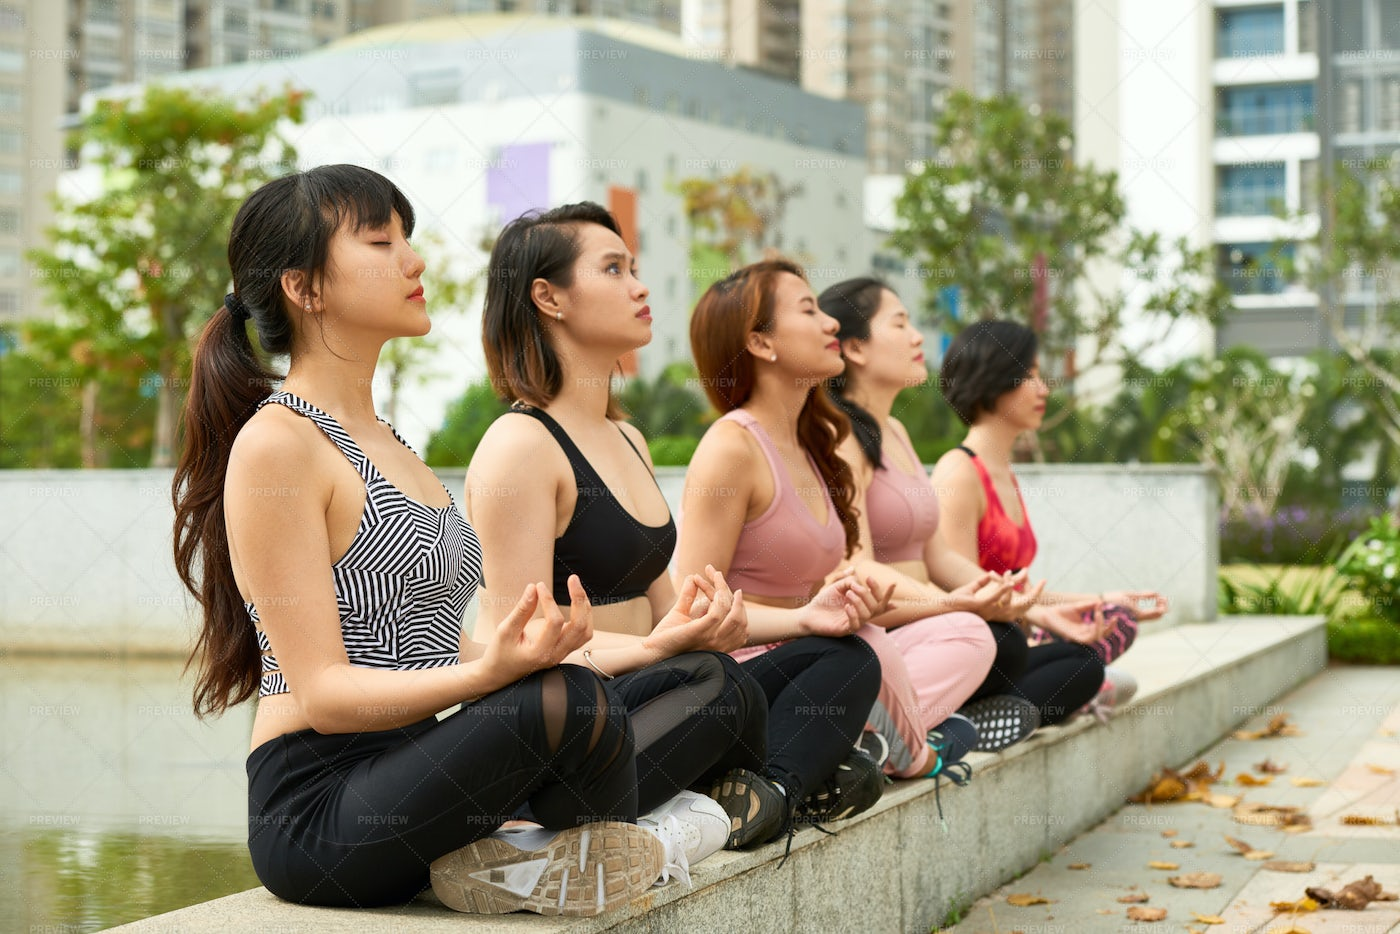 Group Of Women Meditating In Park: Stock Photos